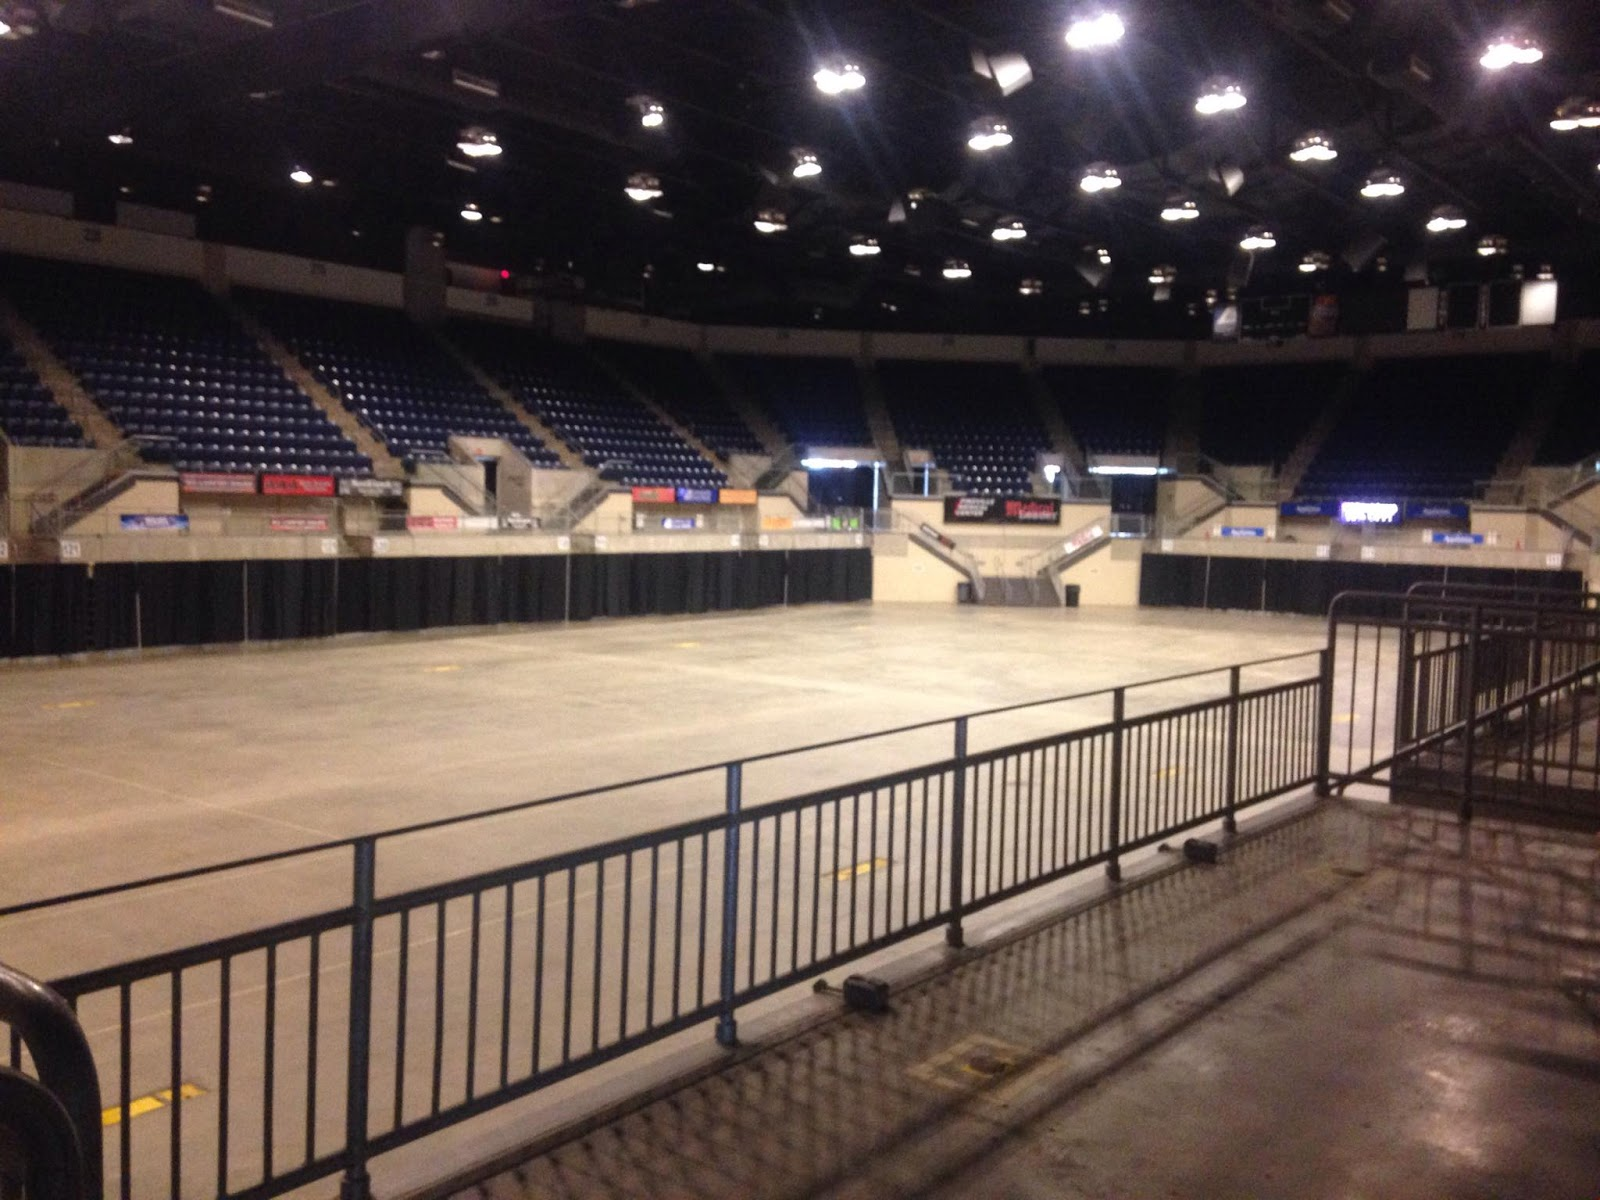 The Expo Center Is A Multi Purpose Arena With 24 000 Square Feet And Seating 7 People It Features 3 Ballroom Suites 4 Individual 2 Box